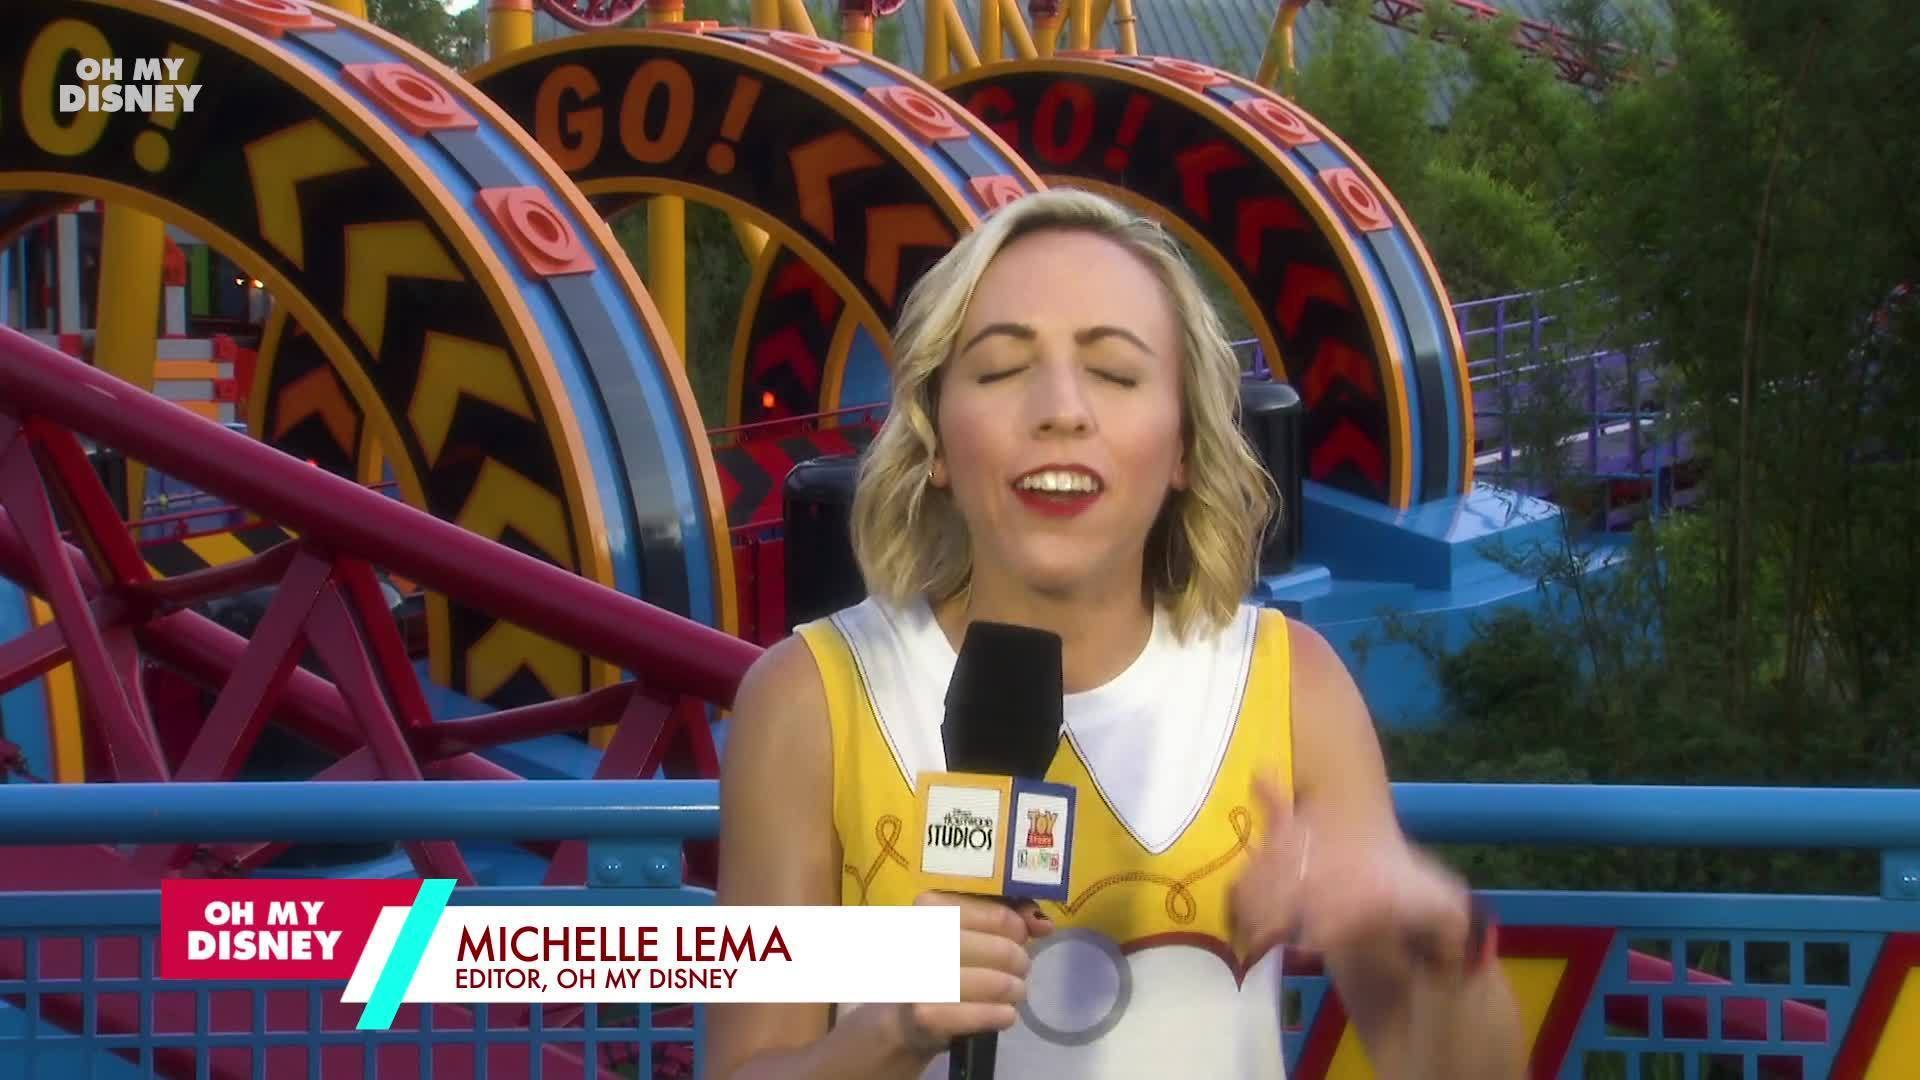 A Look Inside Toy Story Land With a Walt Disney Imagineer | News by Oh My Disney